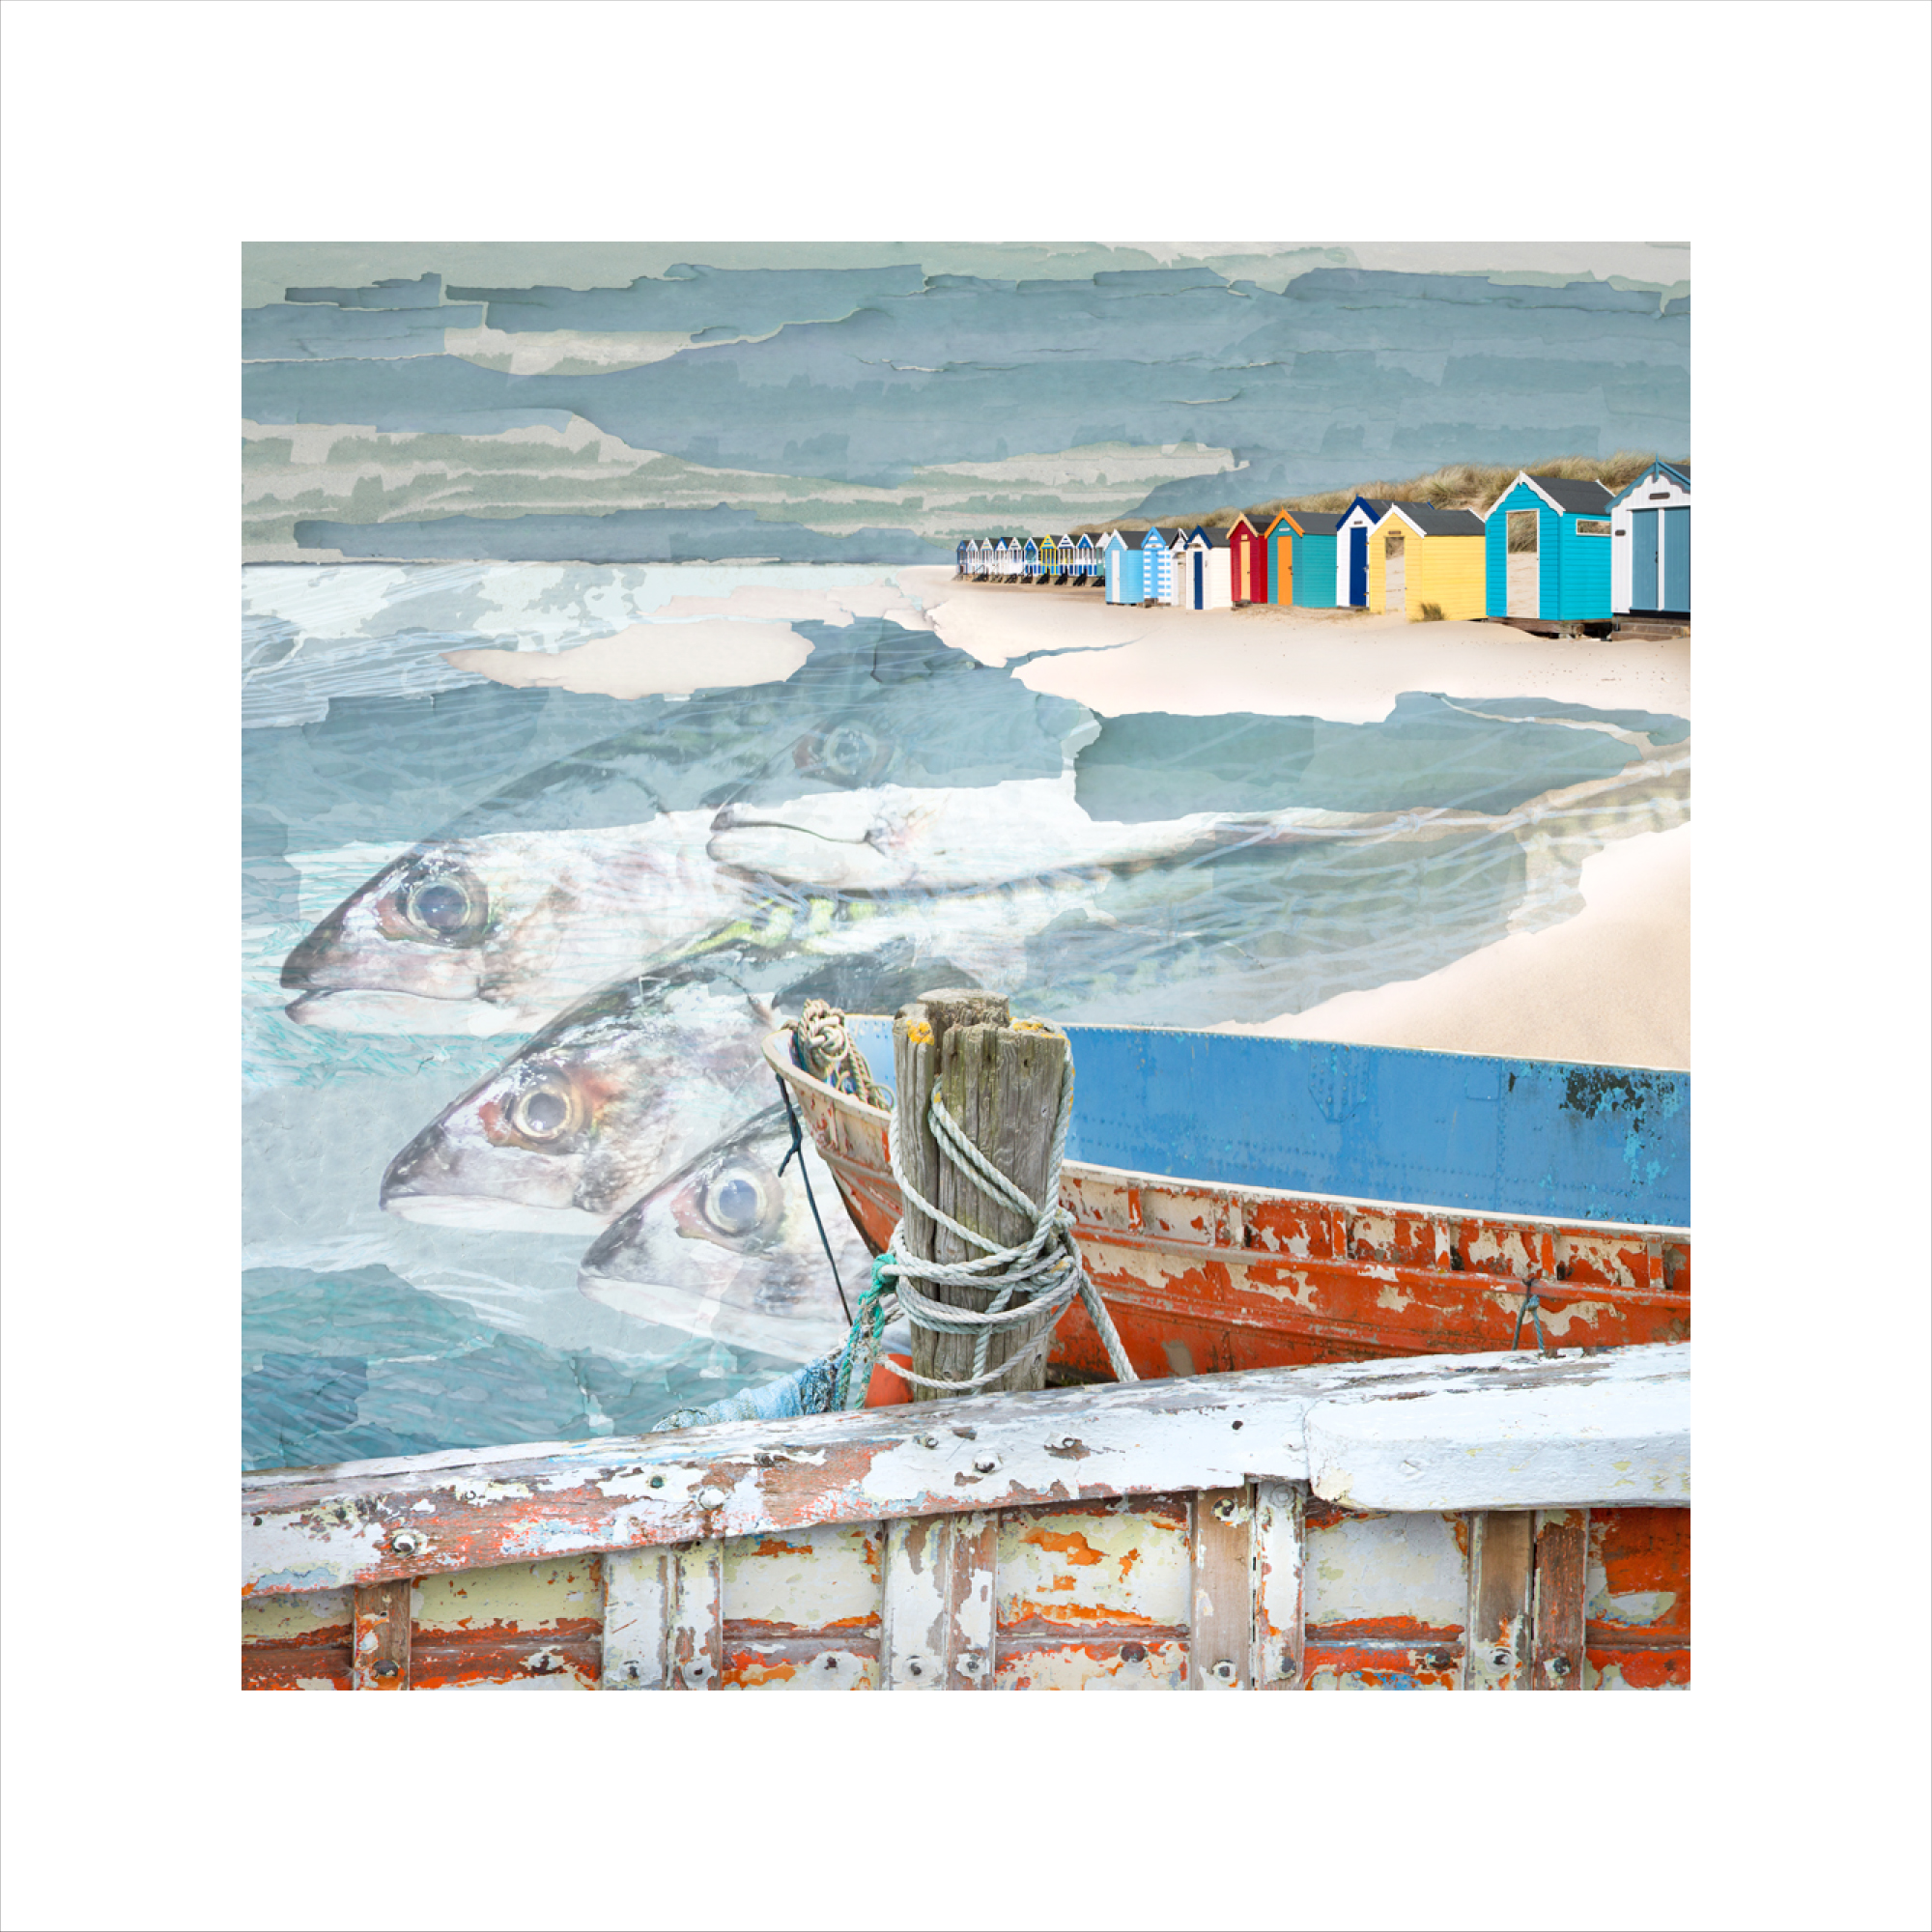 Claire Gill, Arist, Limited Edition Prints, Seascape 64 limited edition print, buy art, seascapes, collect art, beach, boat, coastal art, Southwold